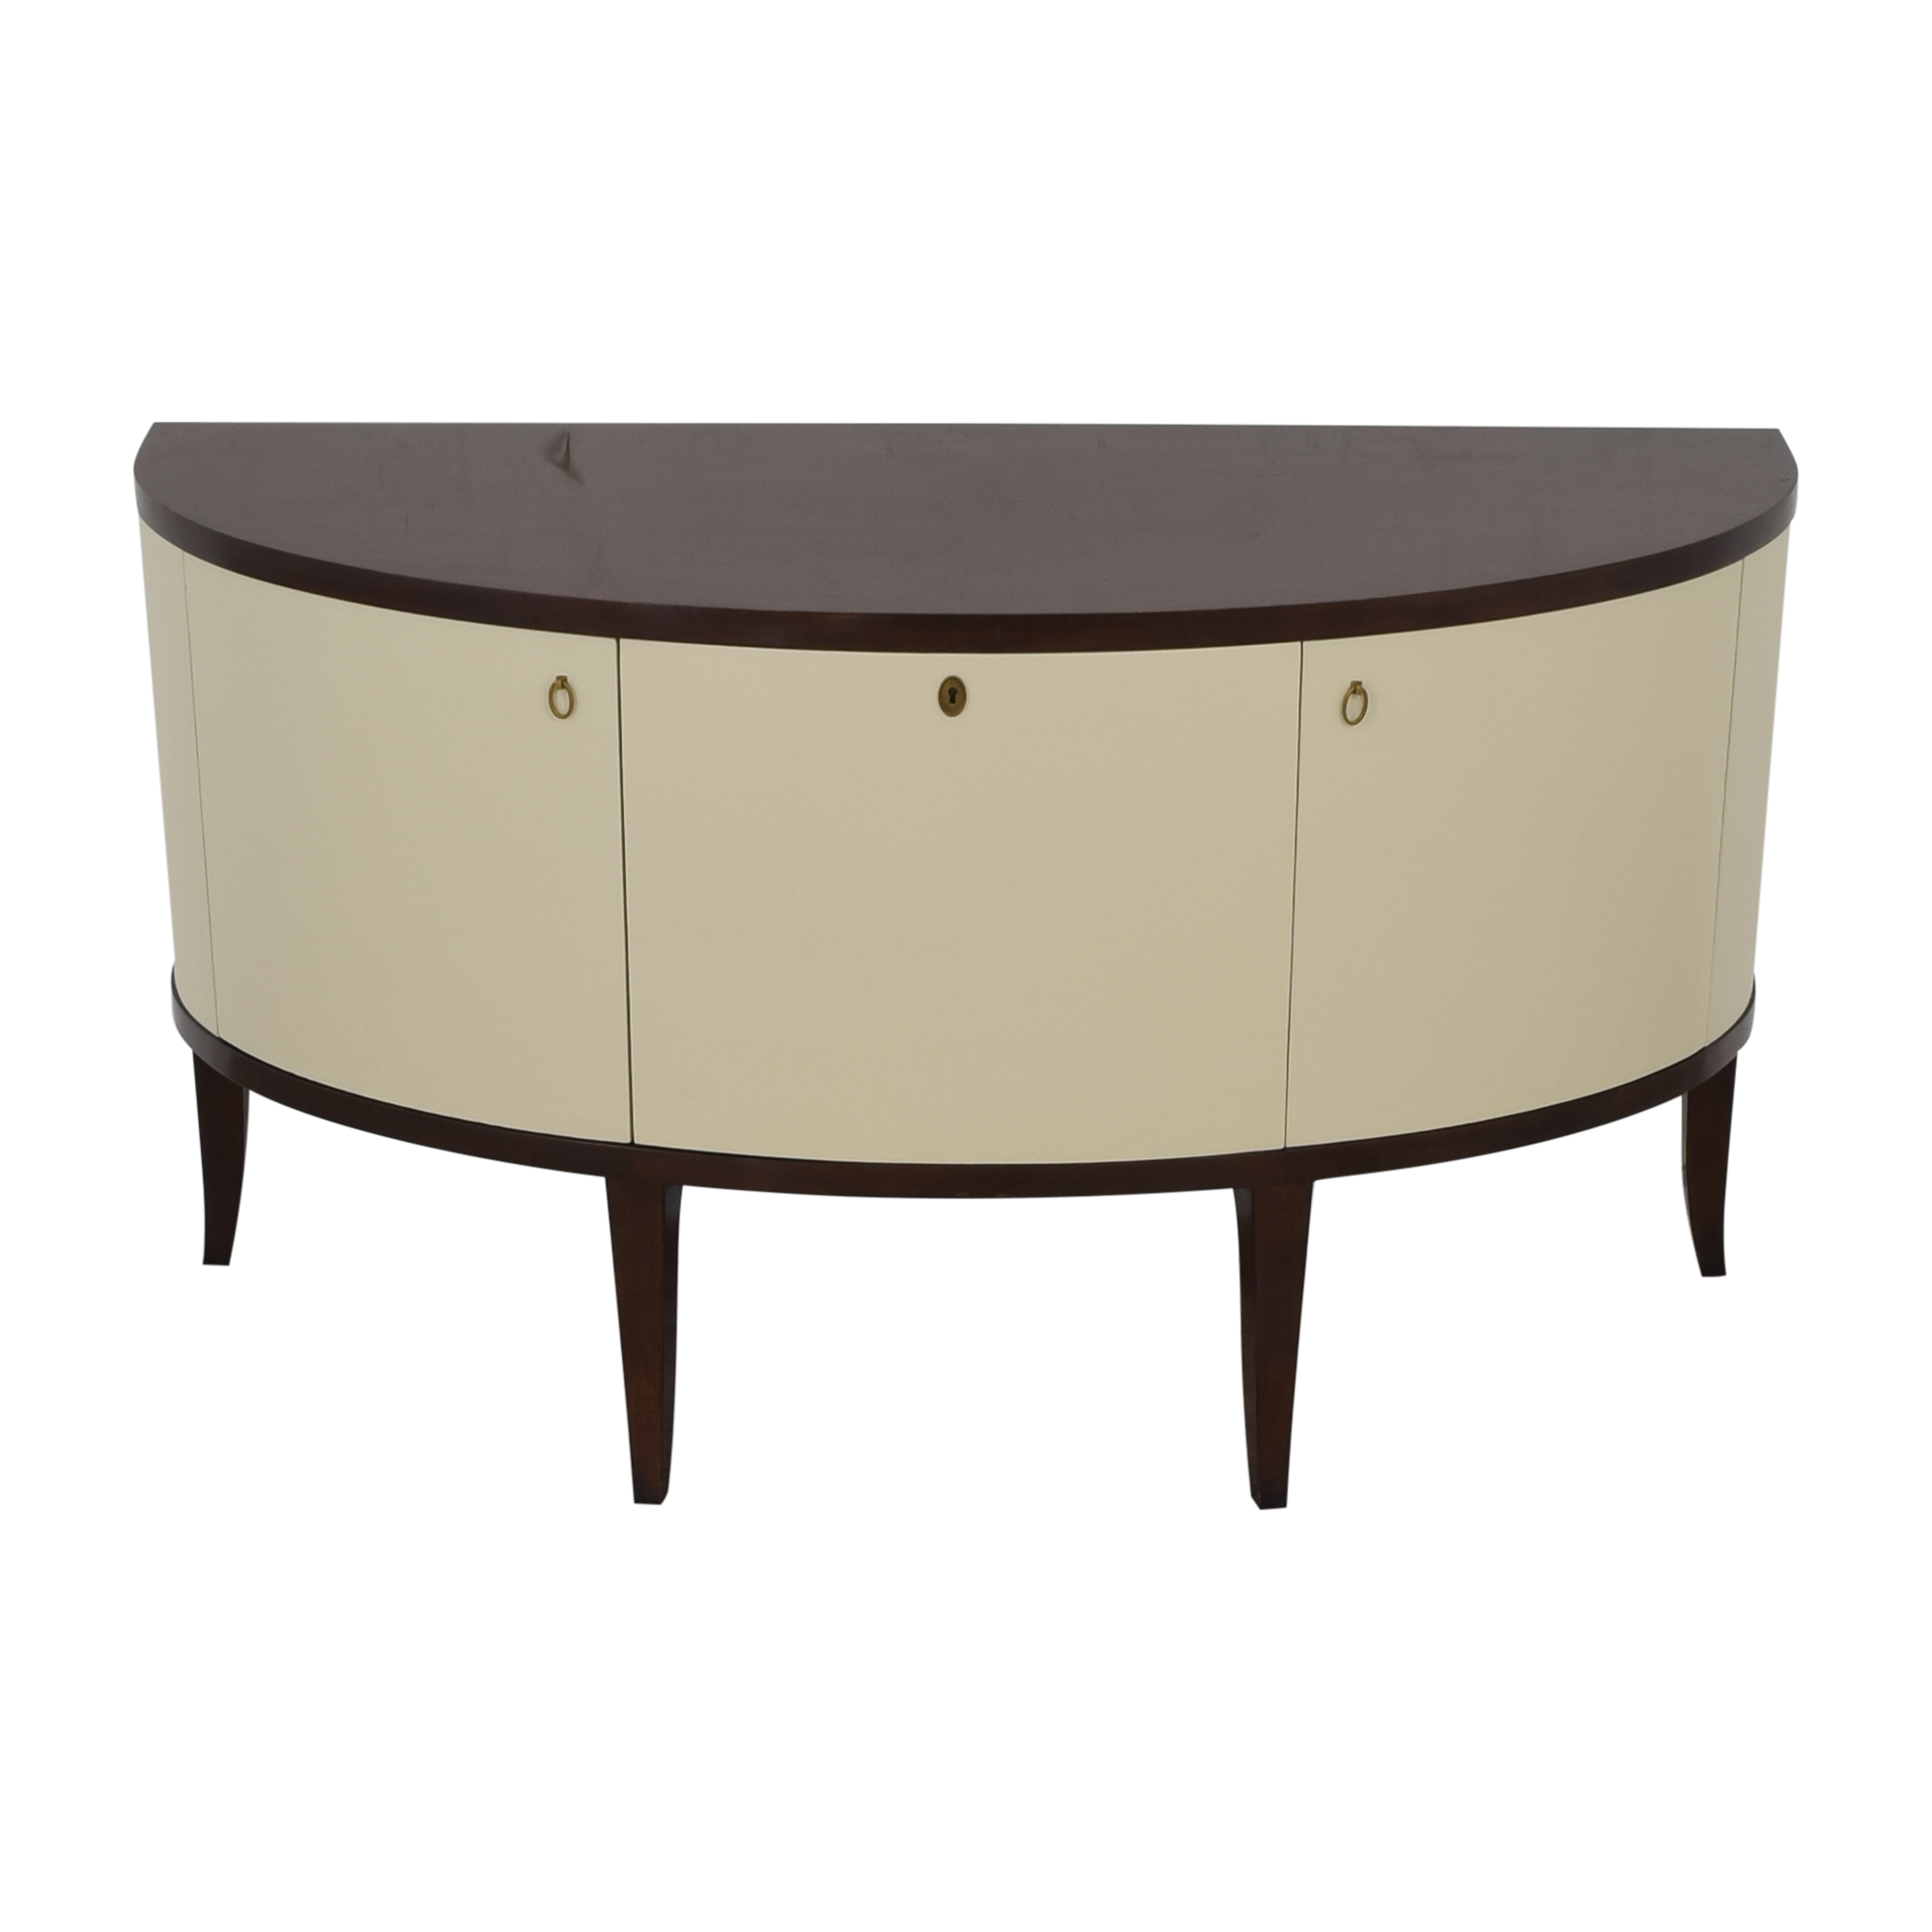 Henredon Furniture Barbara Barry for Henredon Demilune Console Table used